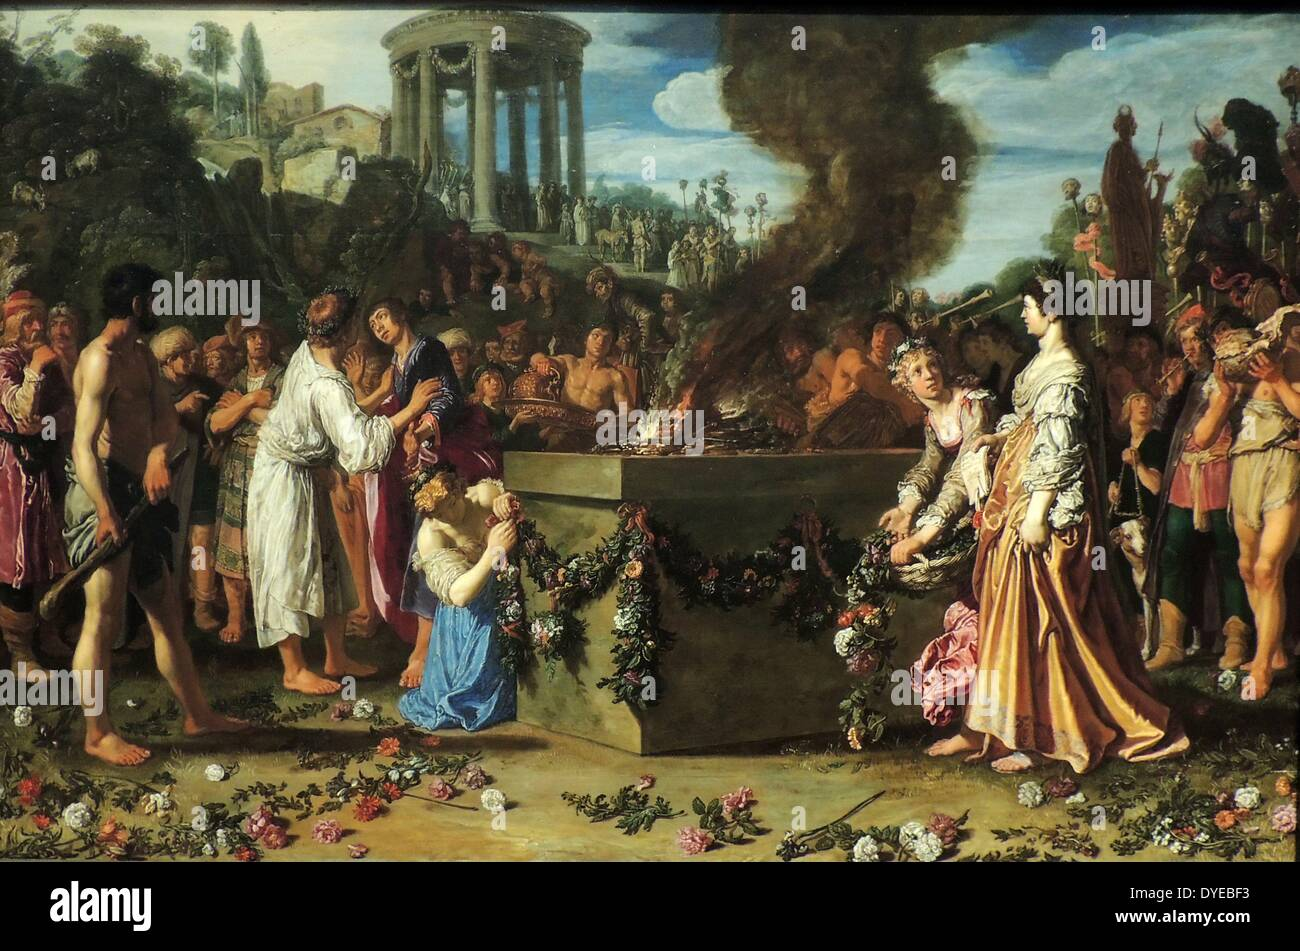 Orestes and Pylades Disputing at the Altar by Pieter Lastman (c. 1583-1633) oil on panel, 1614. - Stock Image